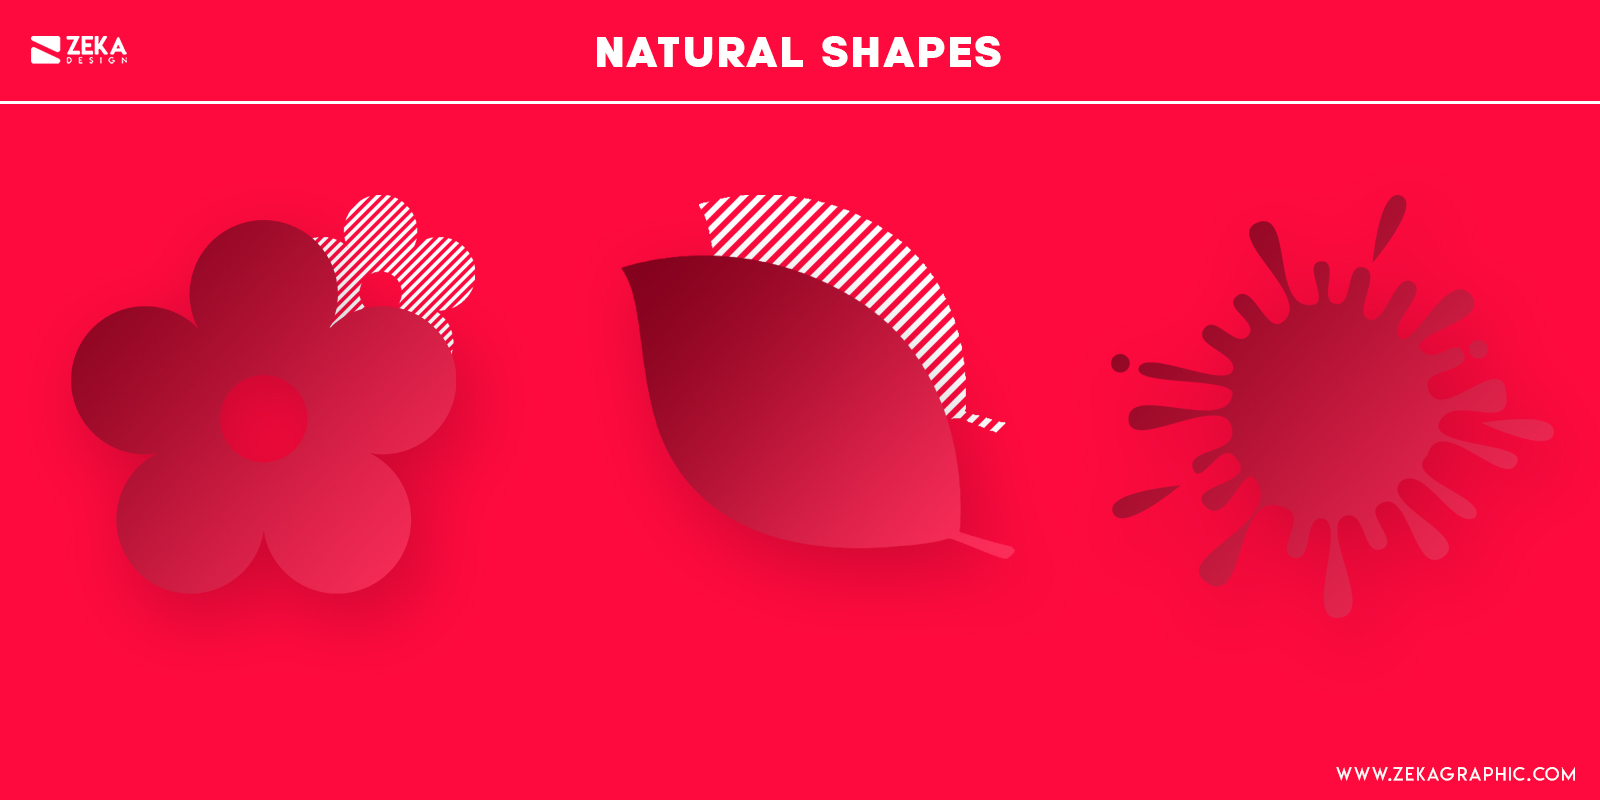 Natural Shapes Psychology in Graphic Design